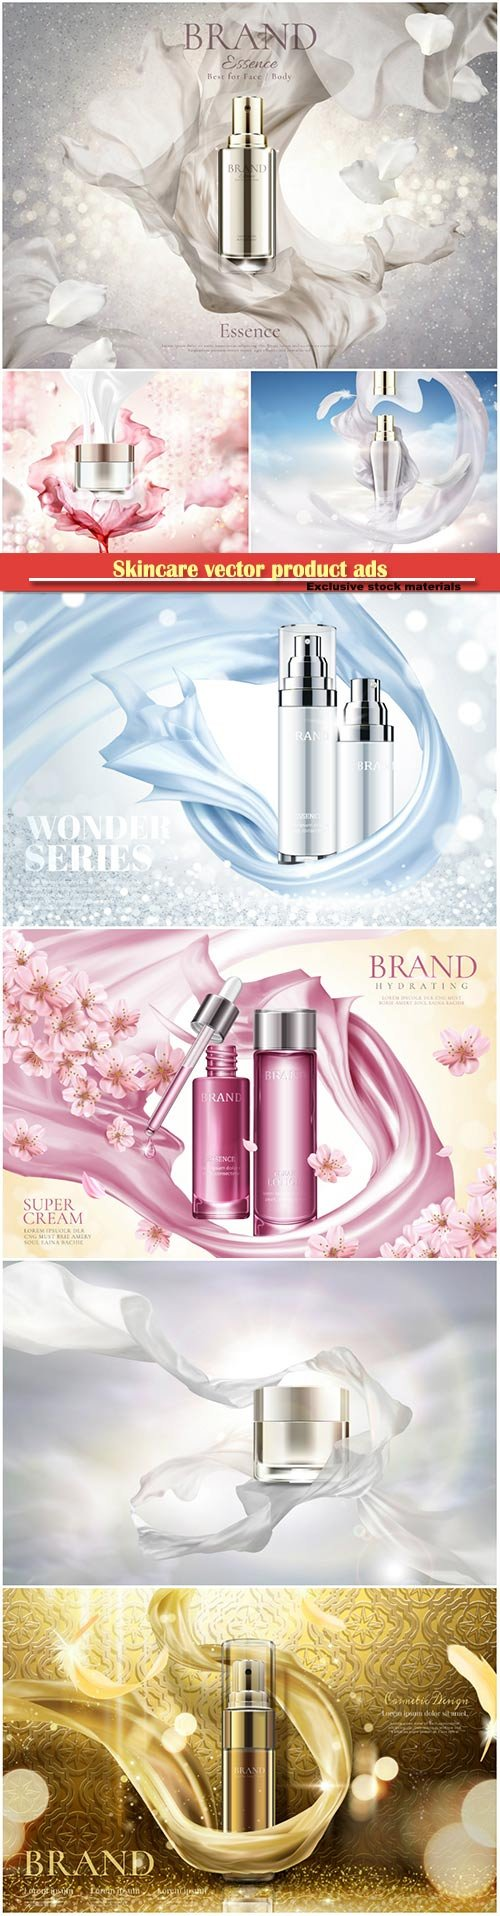 Skincare vector product ads, blank cream in 3d illustration